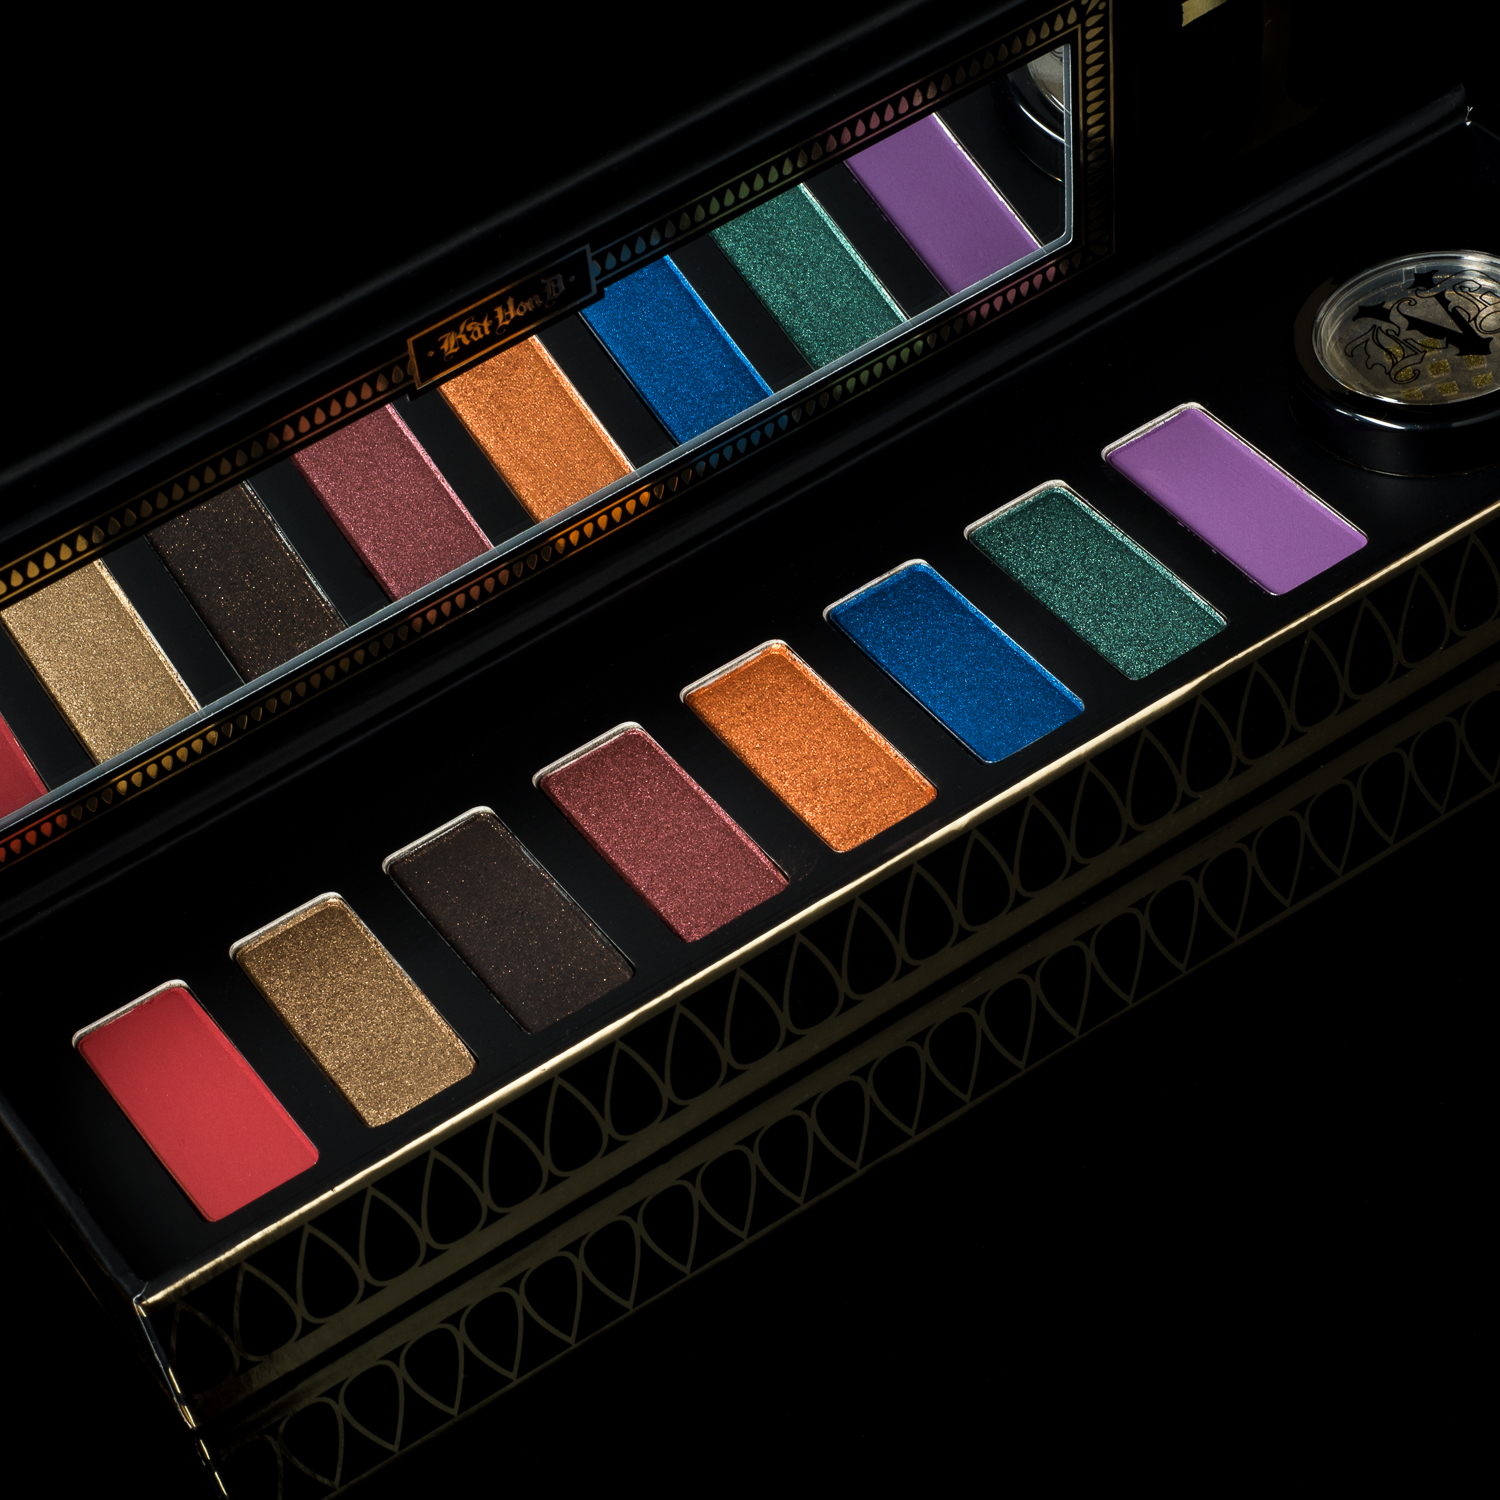 Kat Von D Beauty Serpentina Eyeshadow Palette on a black background